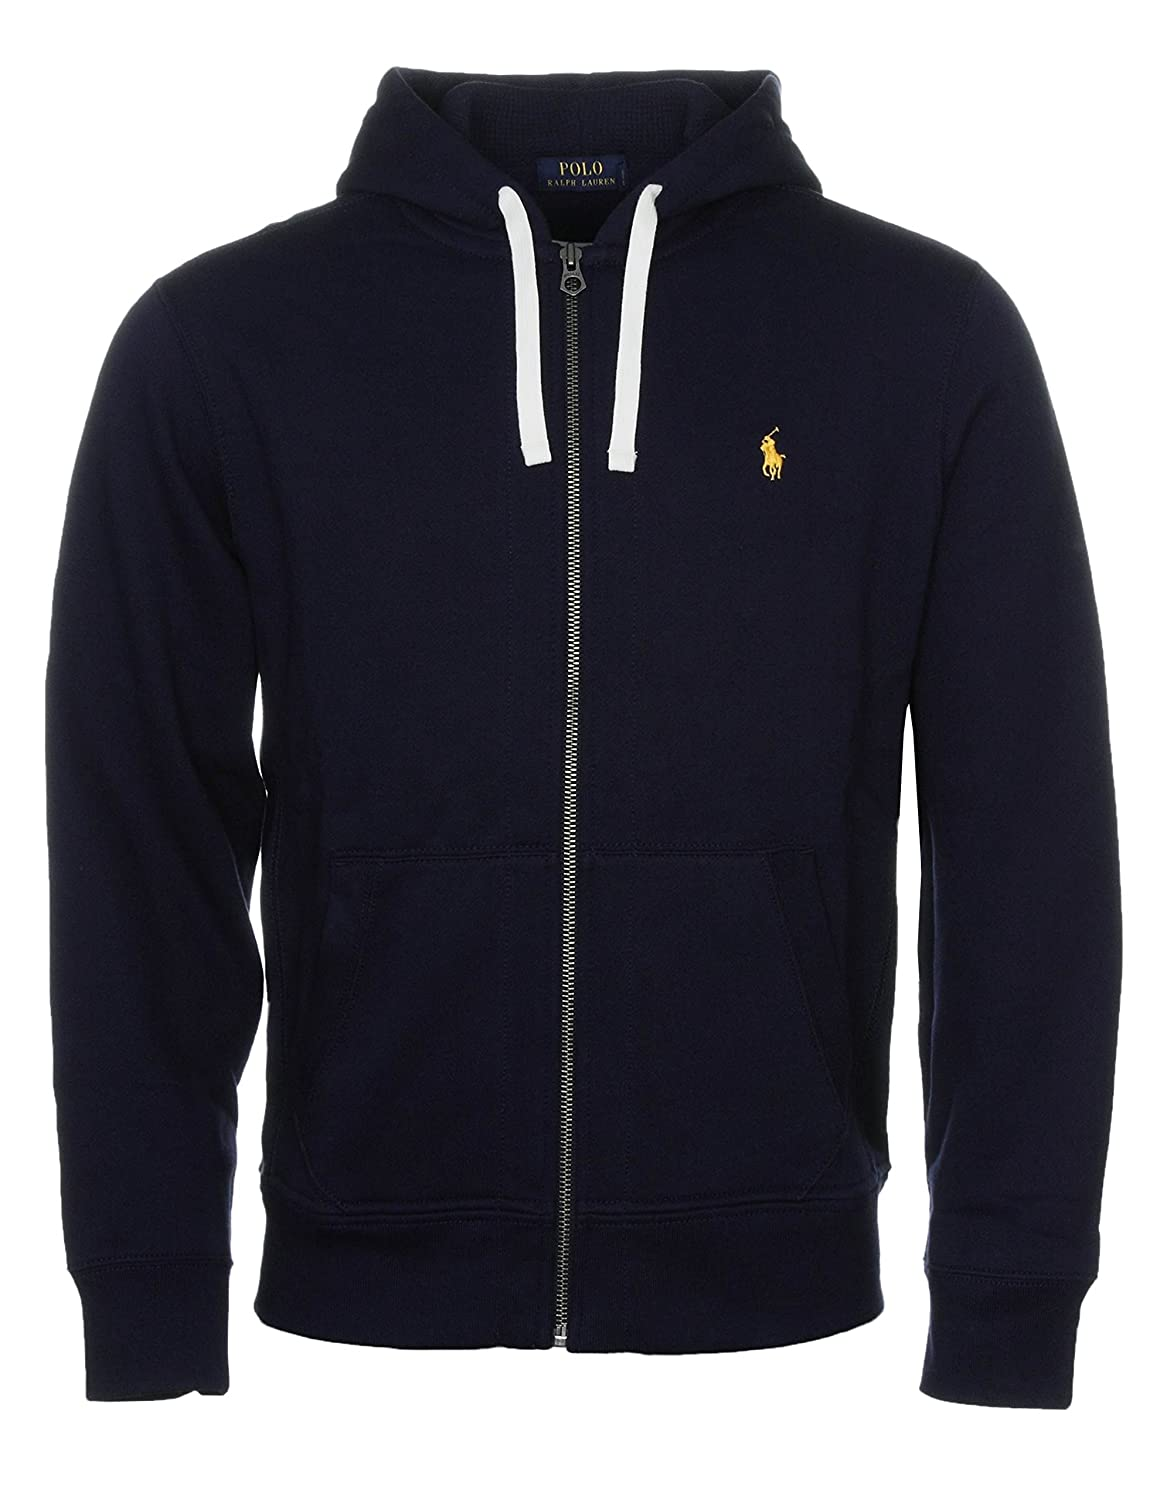 Polo S Fleece Various Lauren Colours Ralph Xxl Men's Hoodie wkO8Pn0